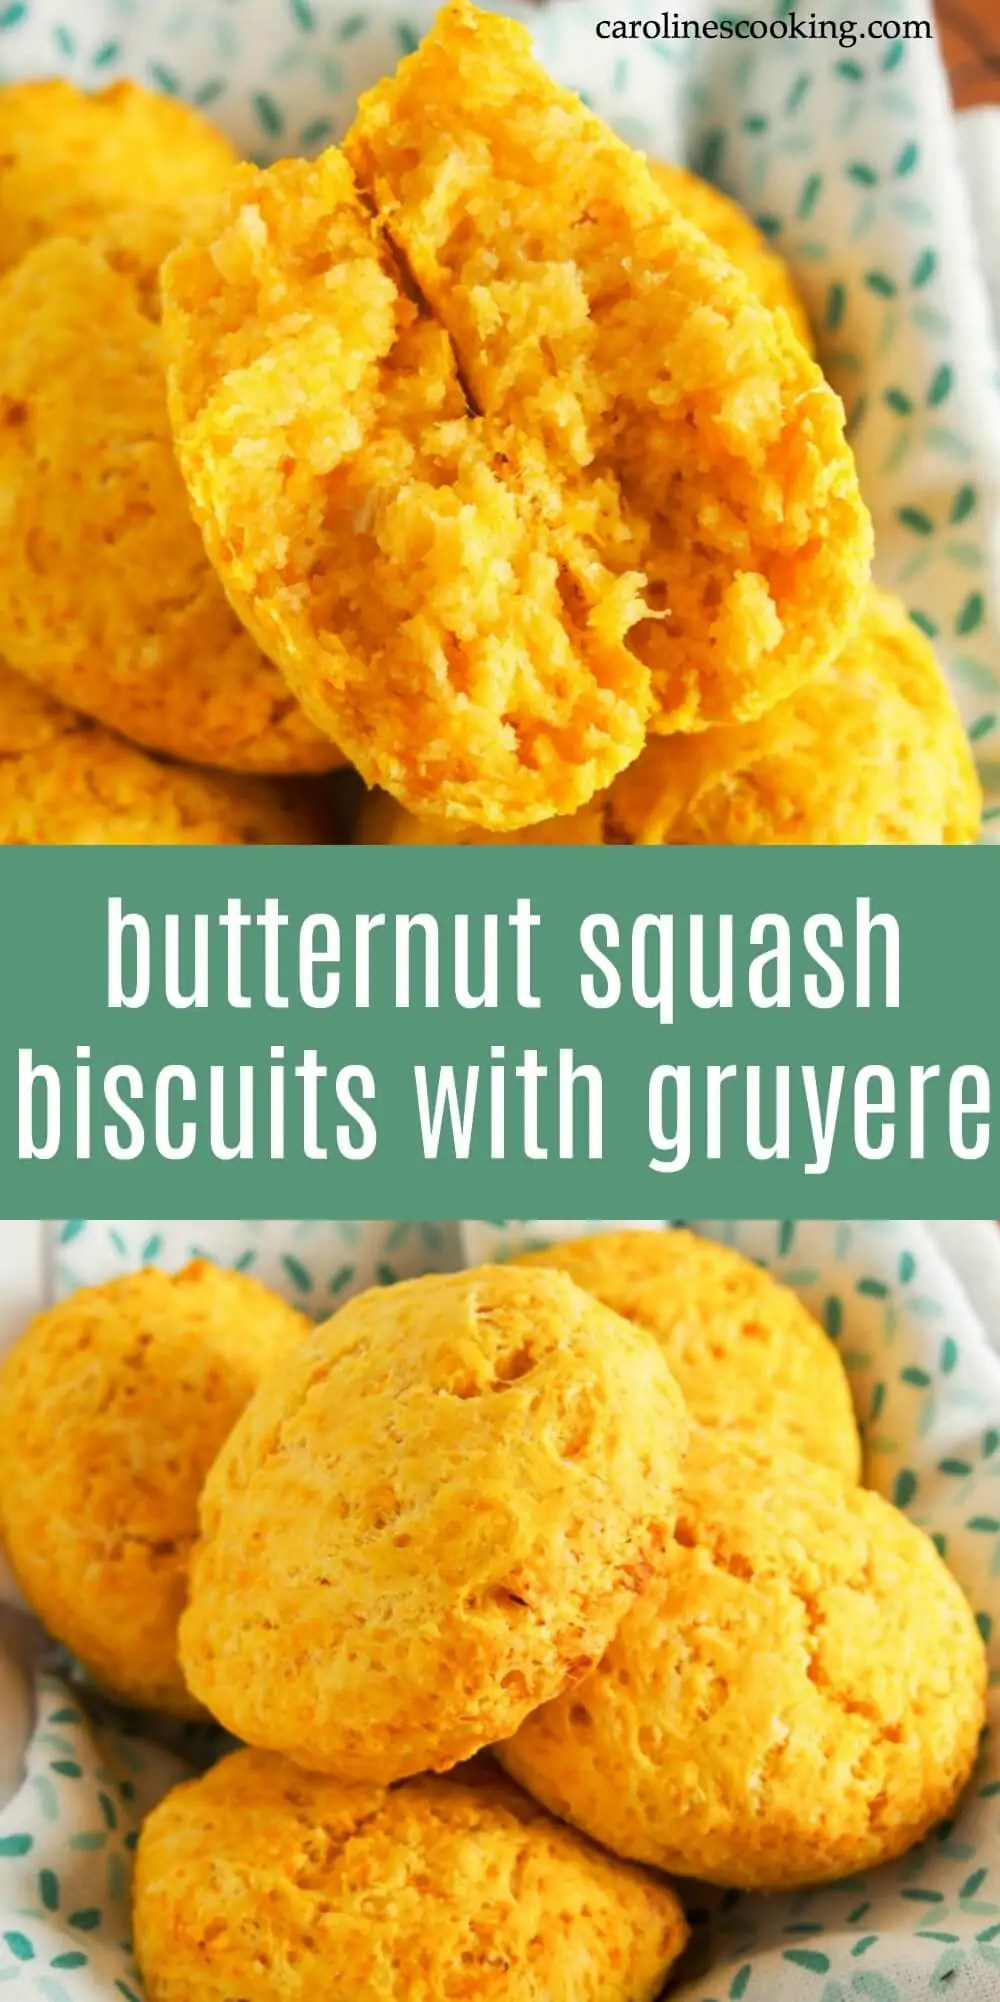 Bright and moist from the squash, with a slight cheesiness, these butternut squash biscuits are quick, easy to make and versatile. Try them alongside a main meal, as a snack or why not fill them as part of lunch. #biscuit #butternutsquash #side